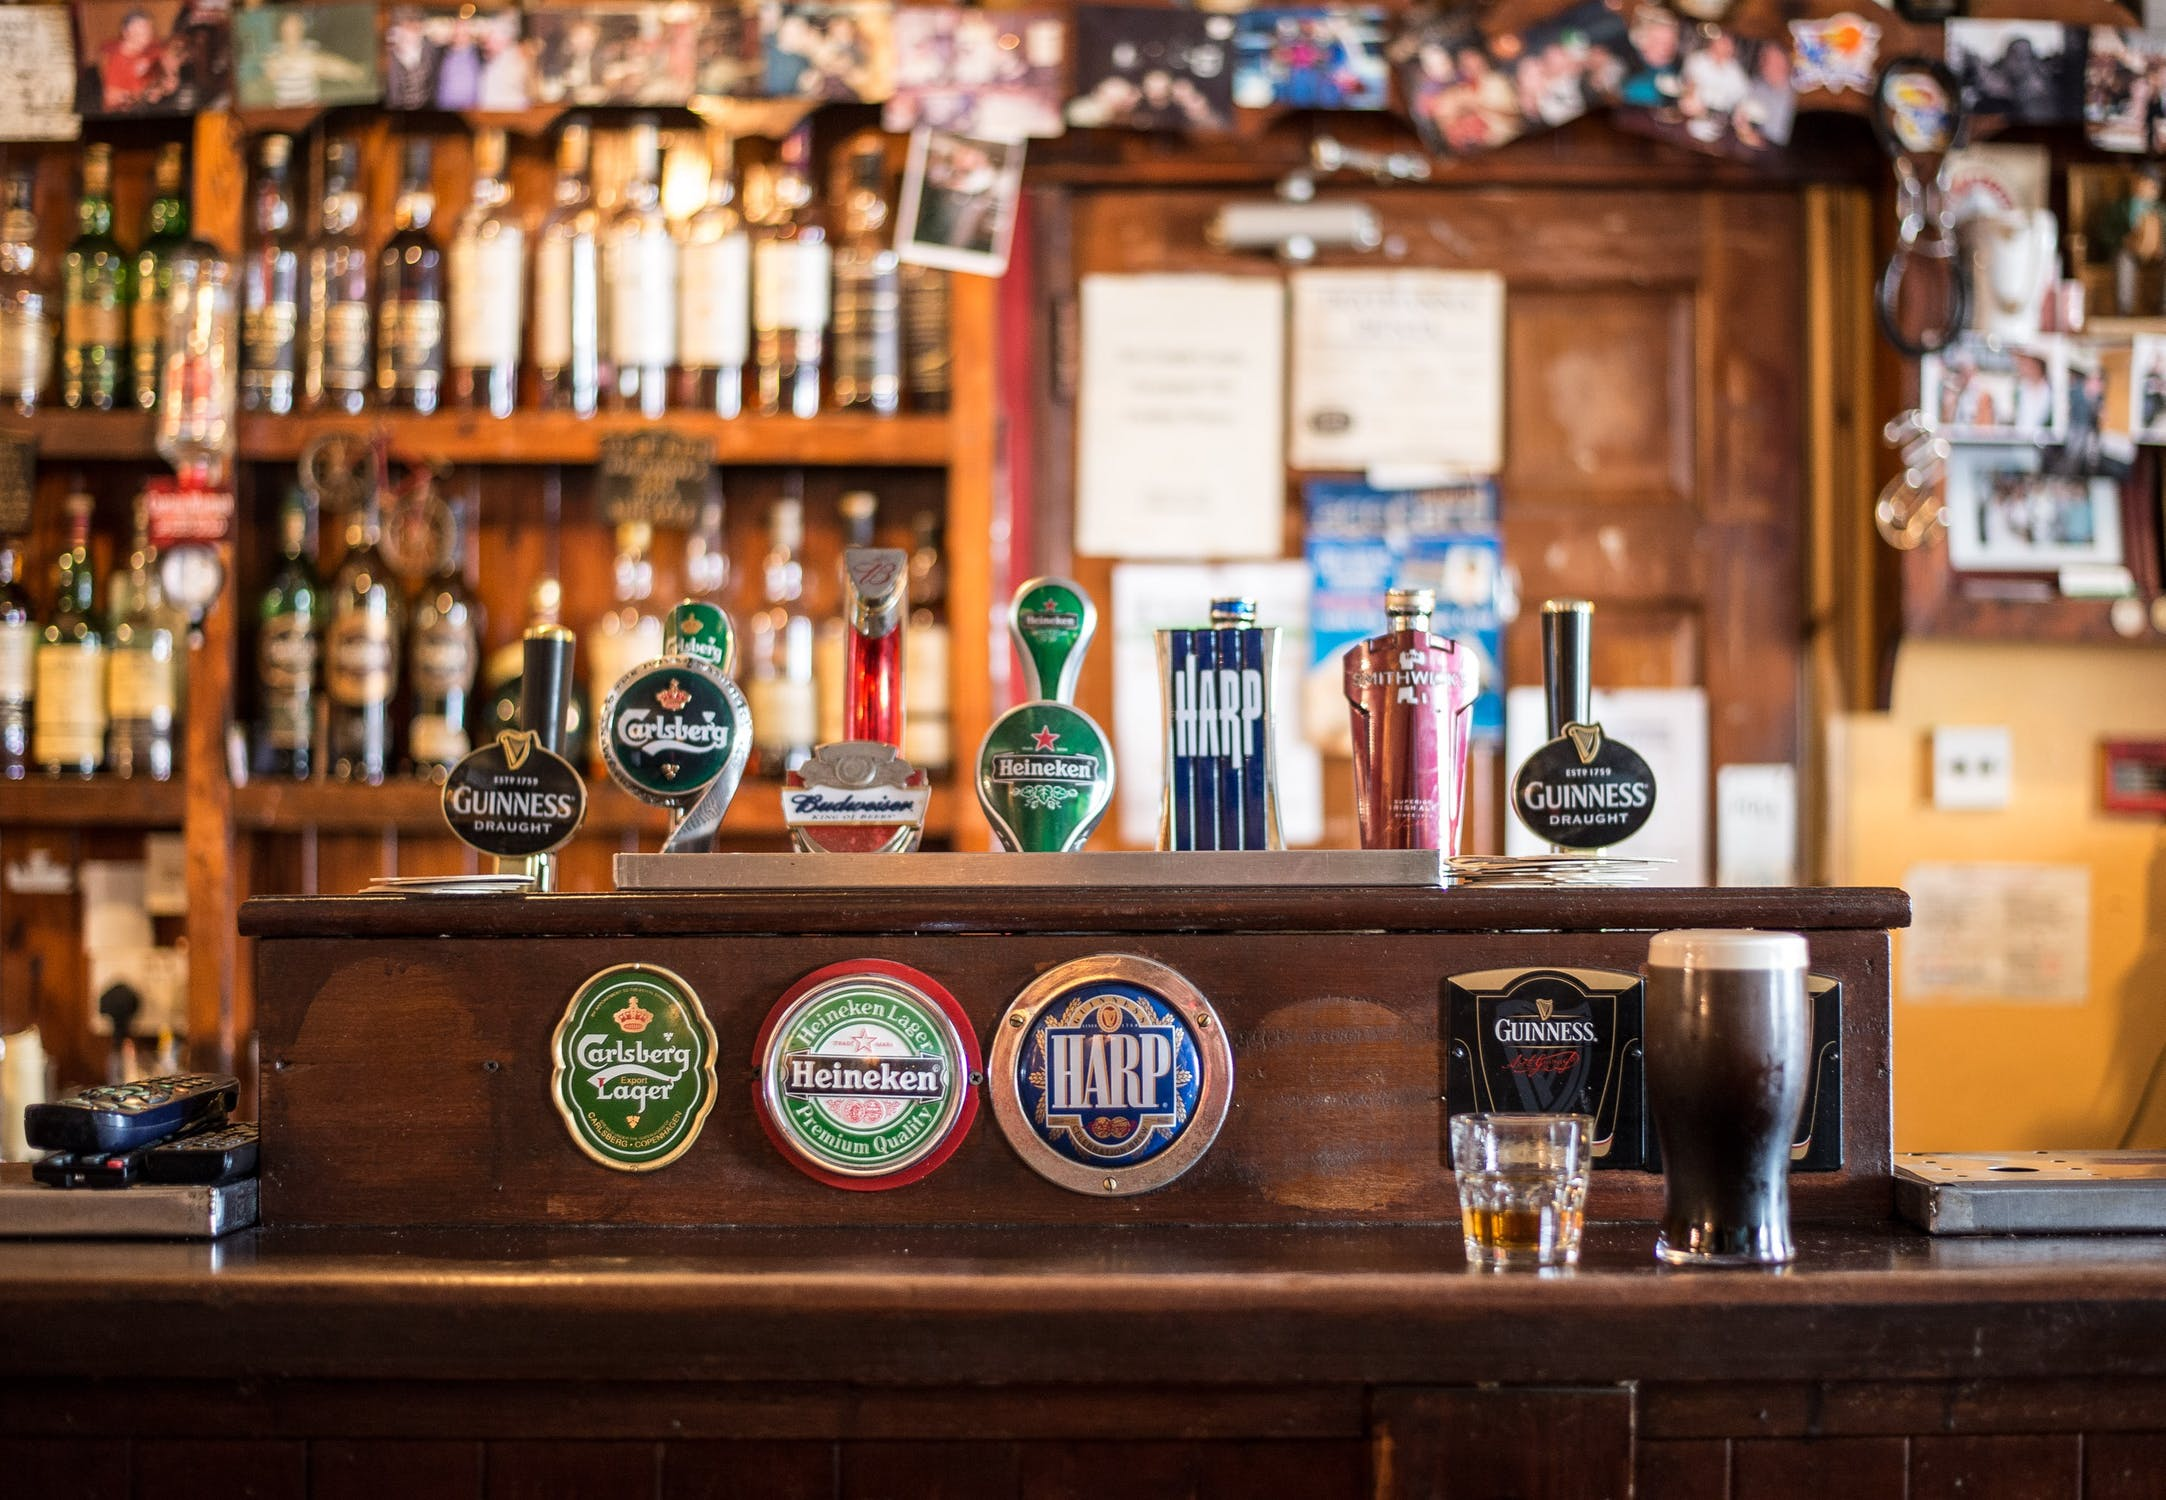 Analysis – was Wetherspoon's right to ditch social media?